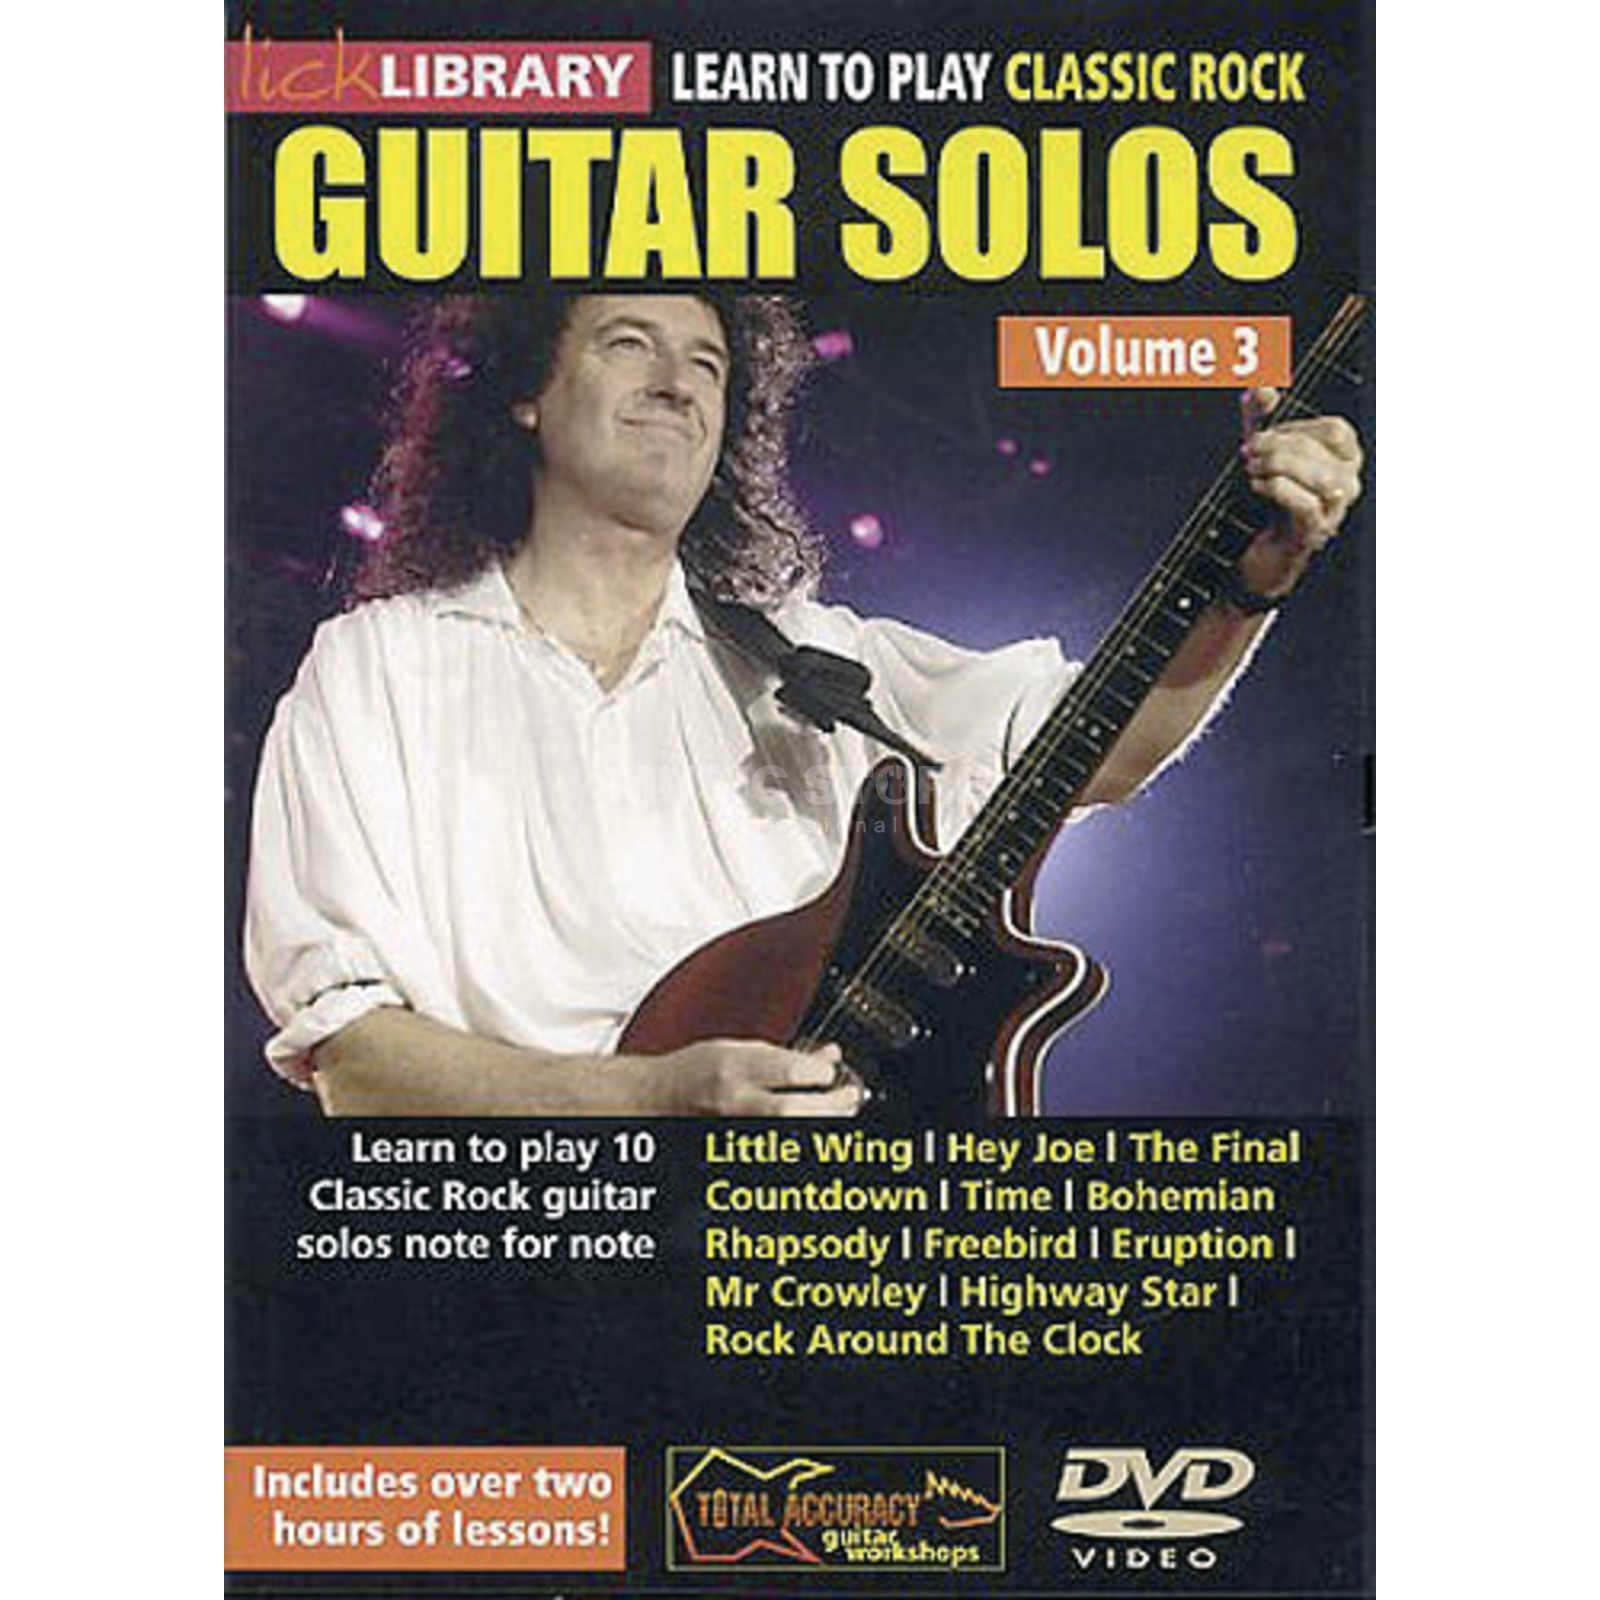 Roadrock International Lick Library: Learn To Play Classic Rock Guitar Solos 3 DVD Produktbild